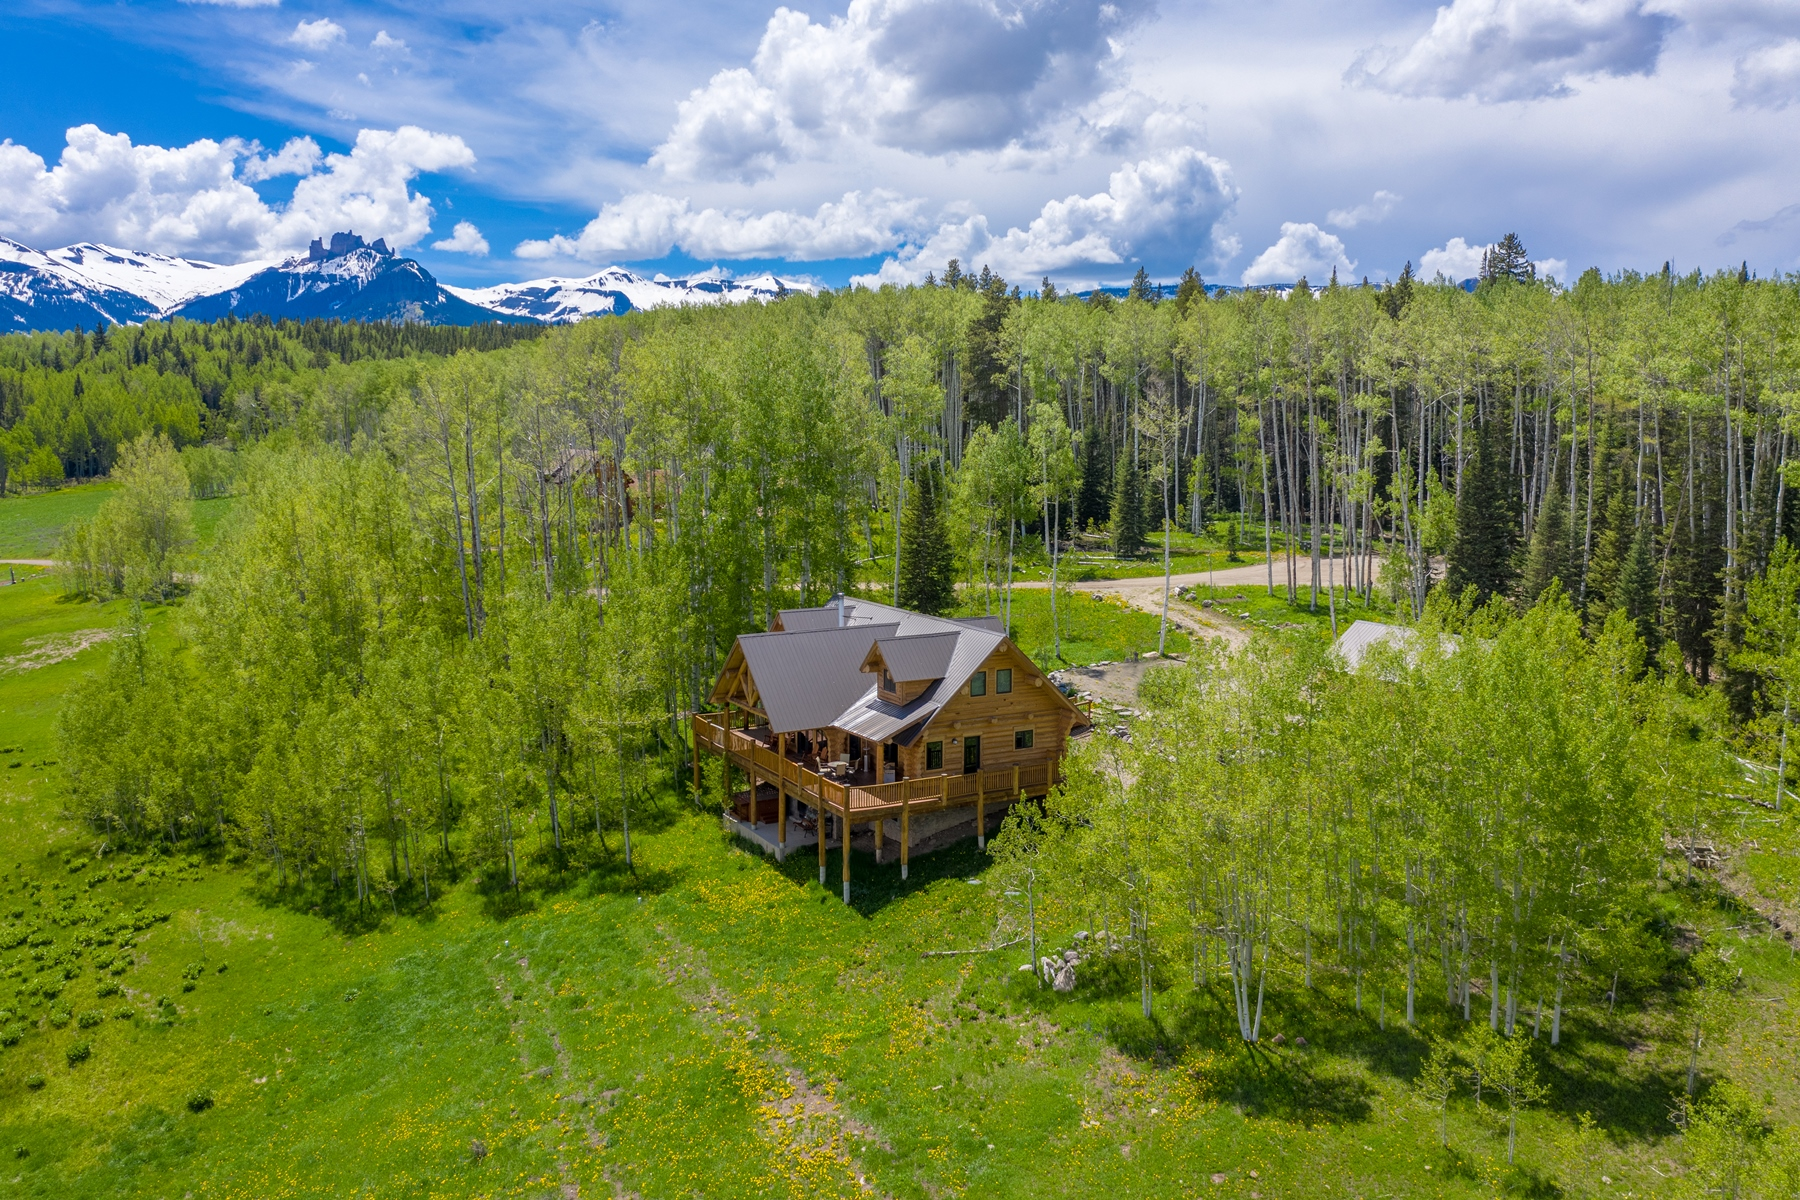 Single Family Homes for Active at Immaculate Log Home 1815 Sioux Road Gunnison, Colorado 81230 United States